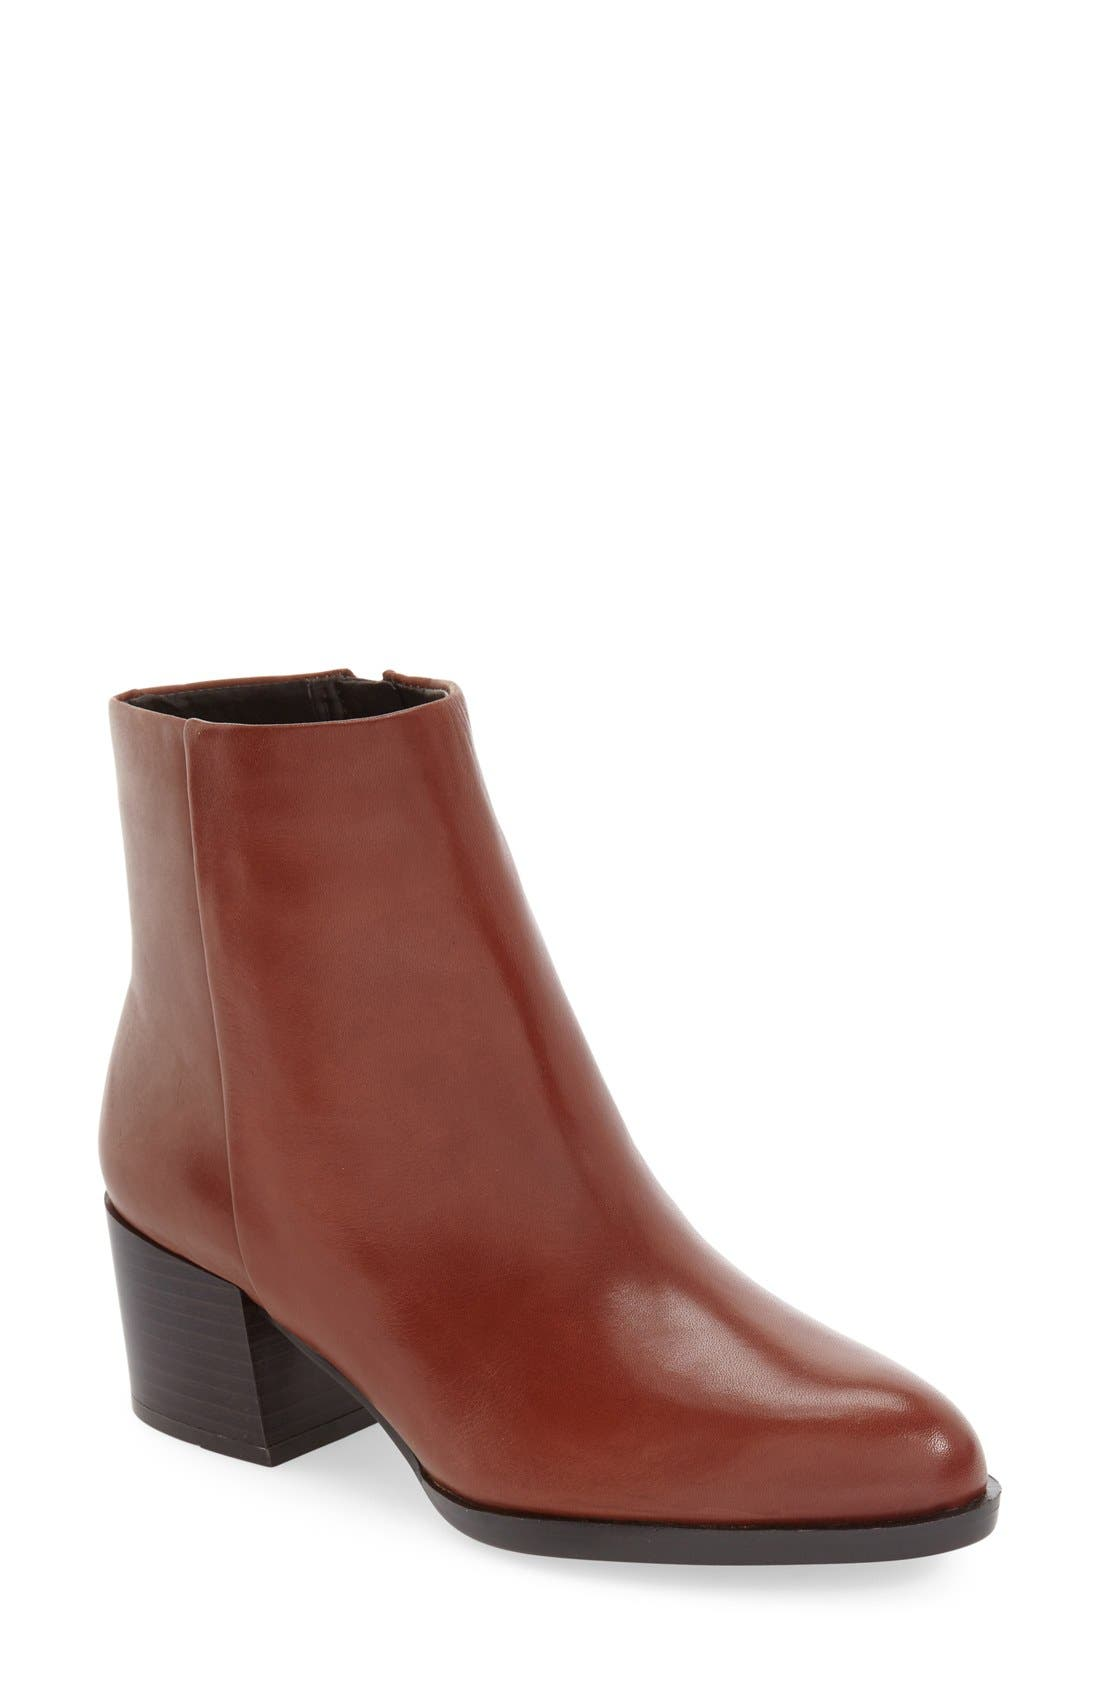 Alternate Image 1 Selected - Sam Edelman 'Joey' Bootie (Women)